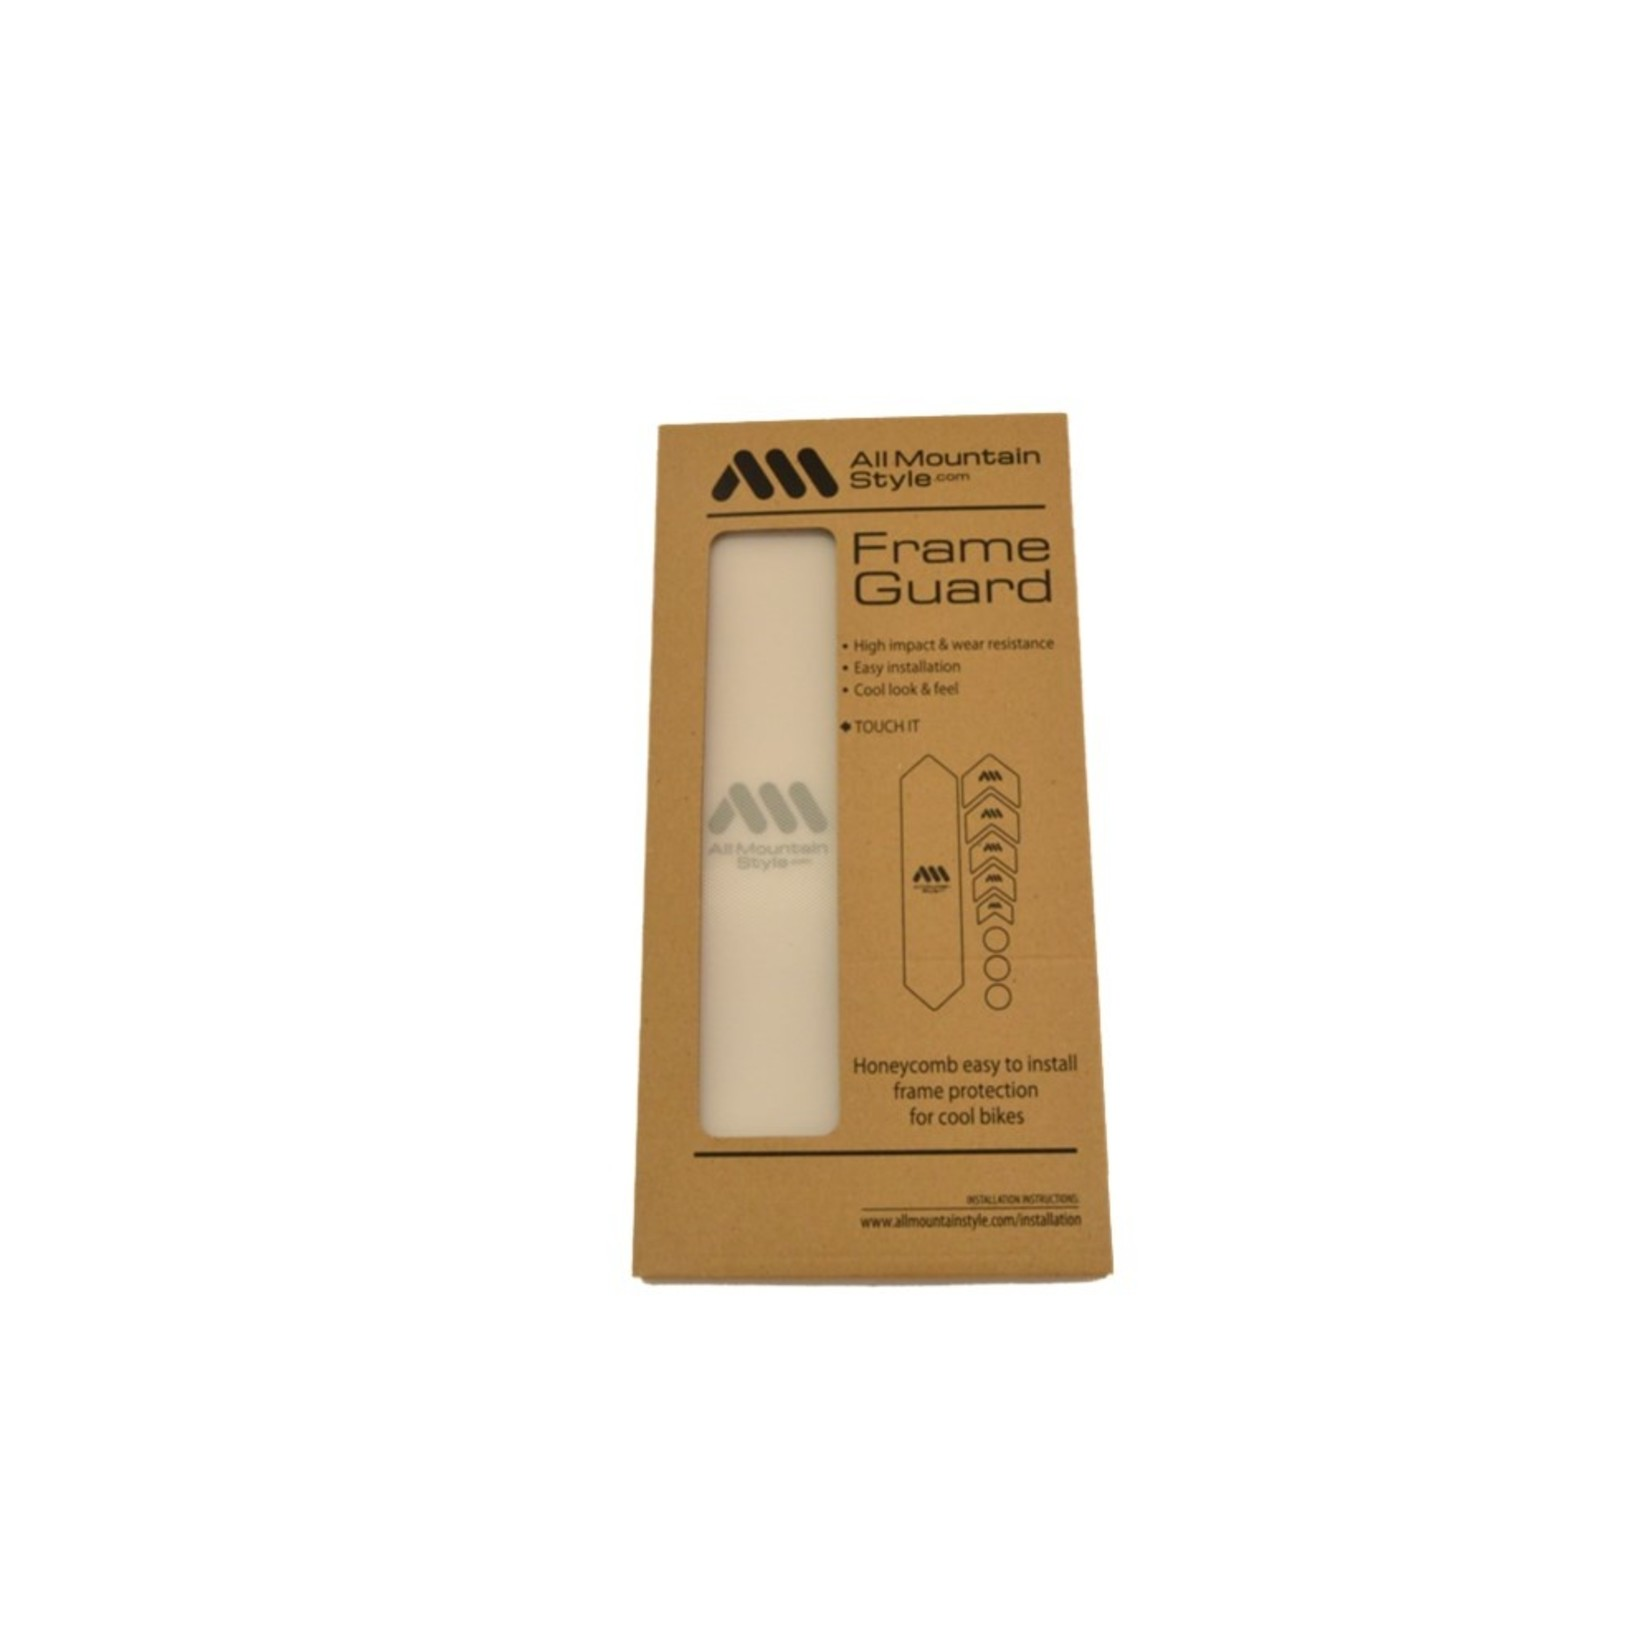 All Mountain Style (AMS) All Mountain Style, AMS Basic Frame Protection Wrap Clear/Silver